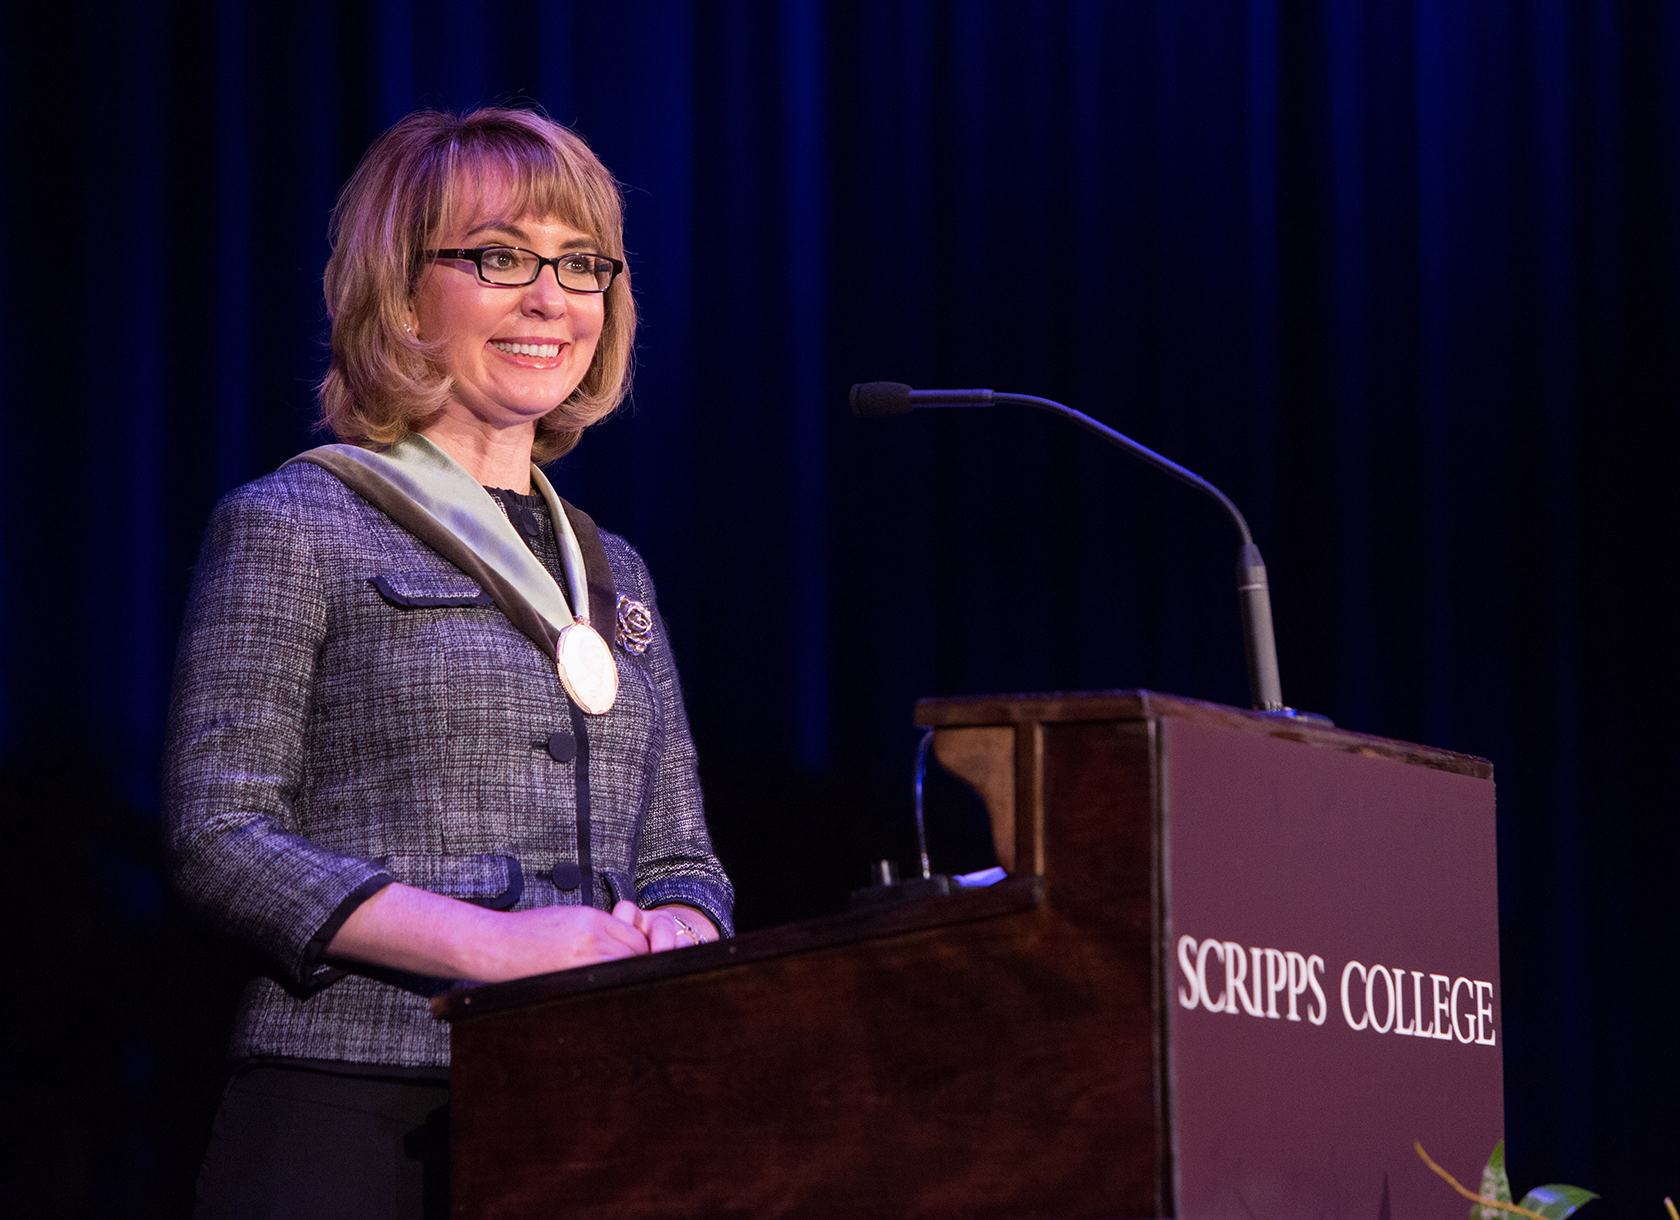 White woman wearing glasses and medallion stands behind a Scripps College podium